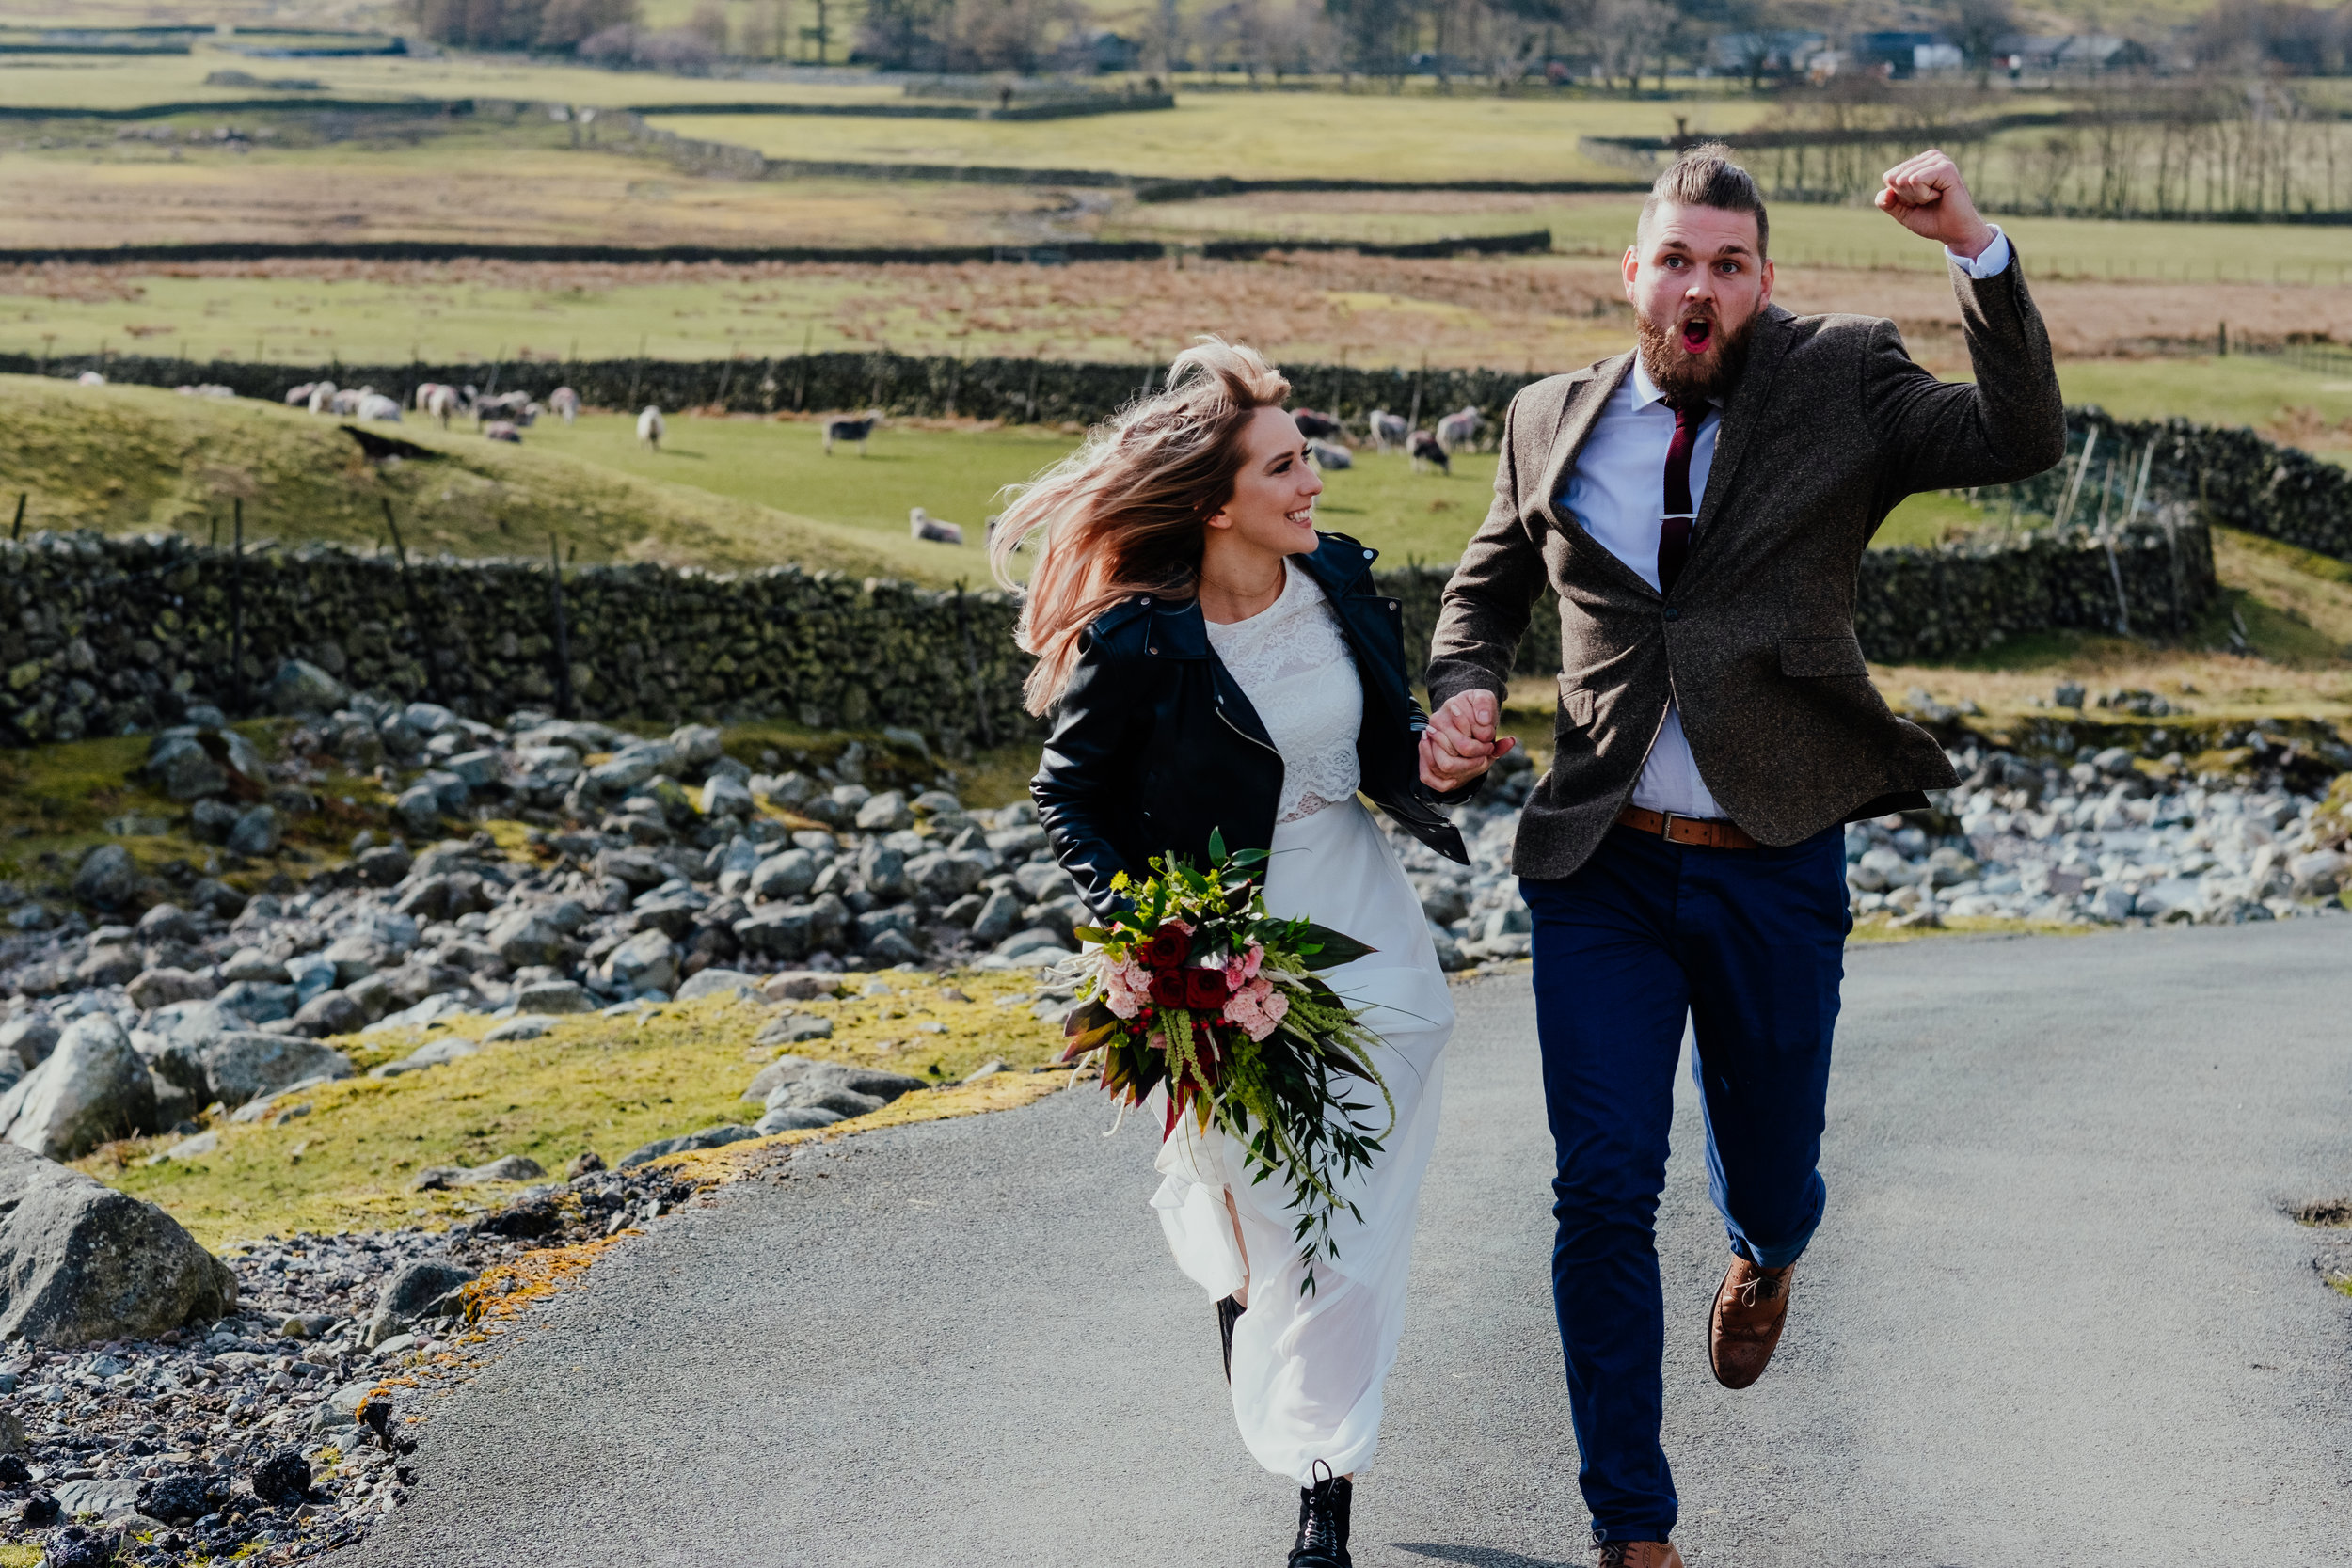 Groom fist pumping while he and bride run along hand in hand